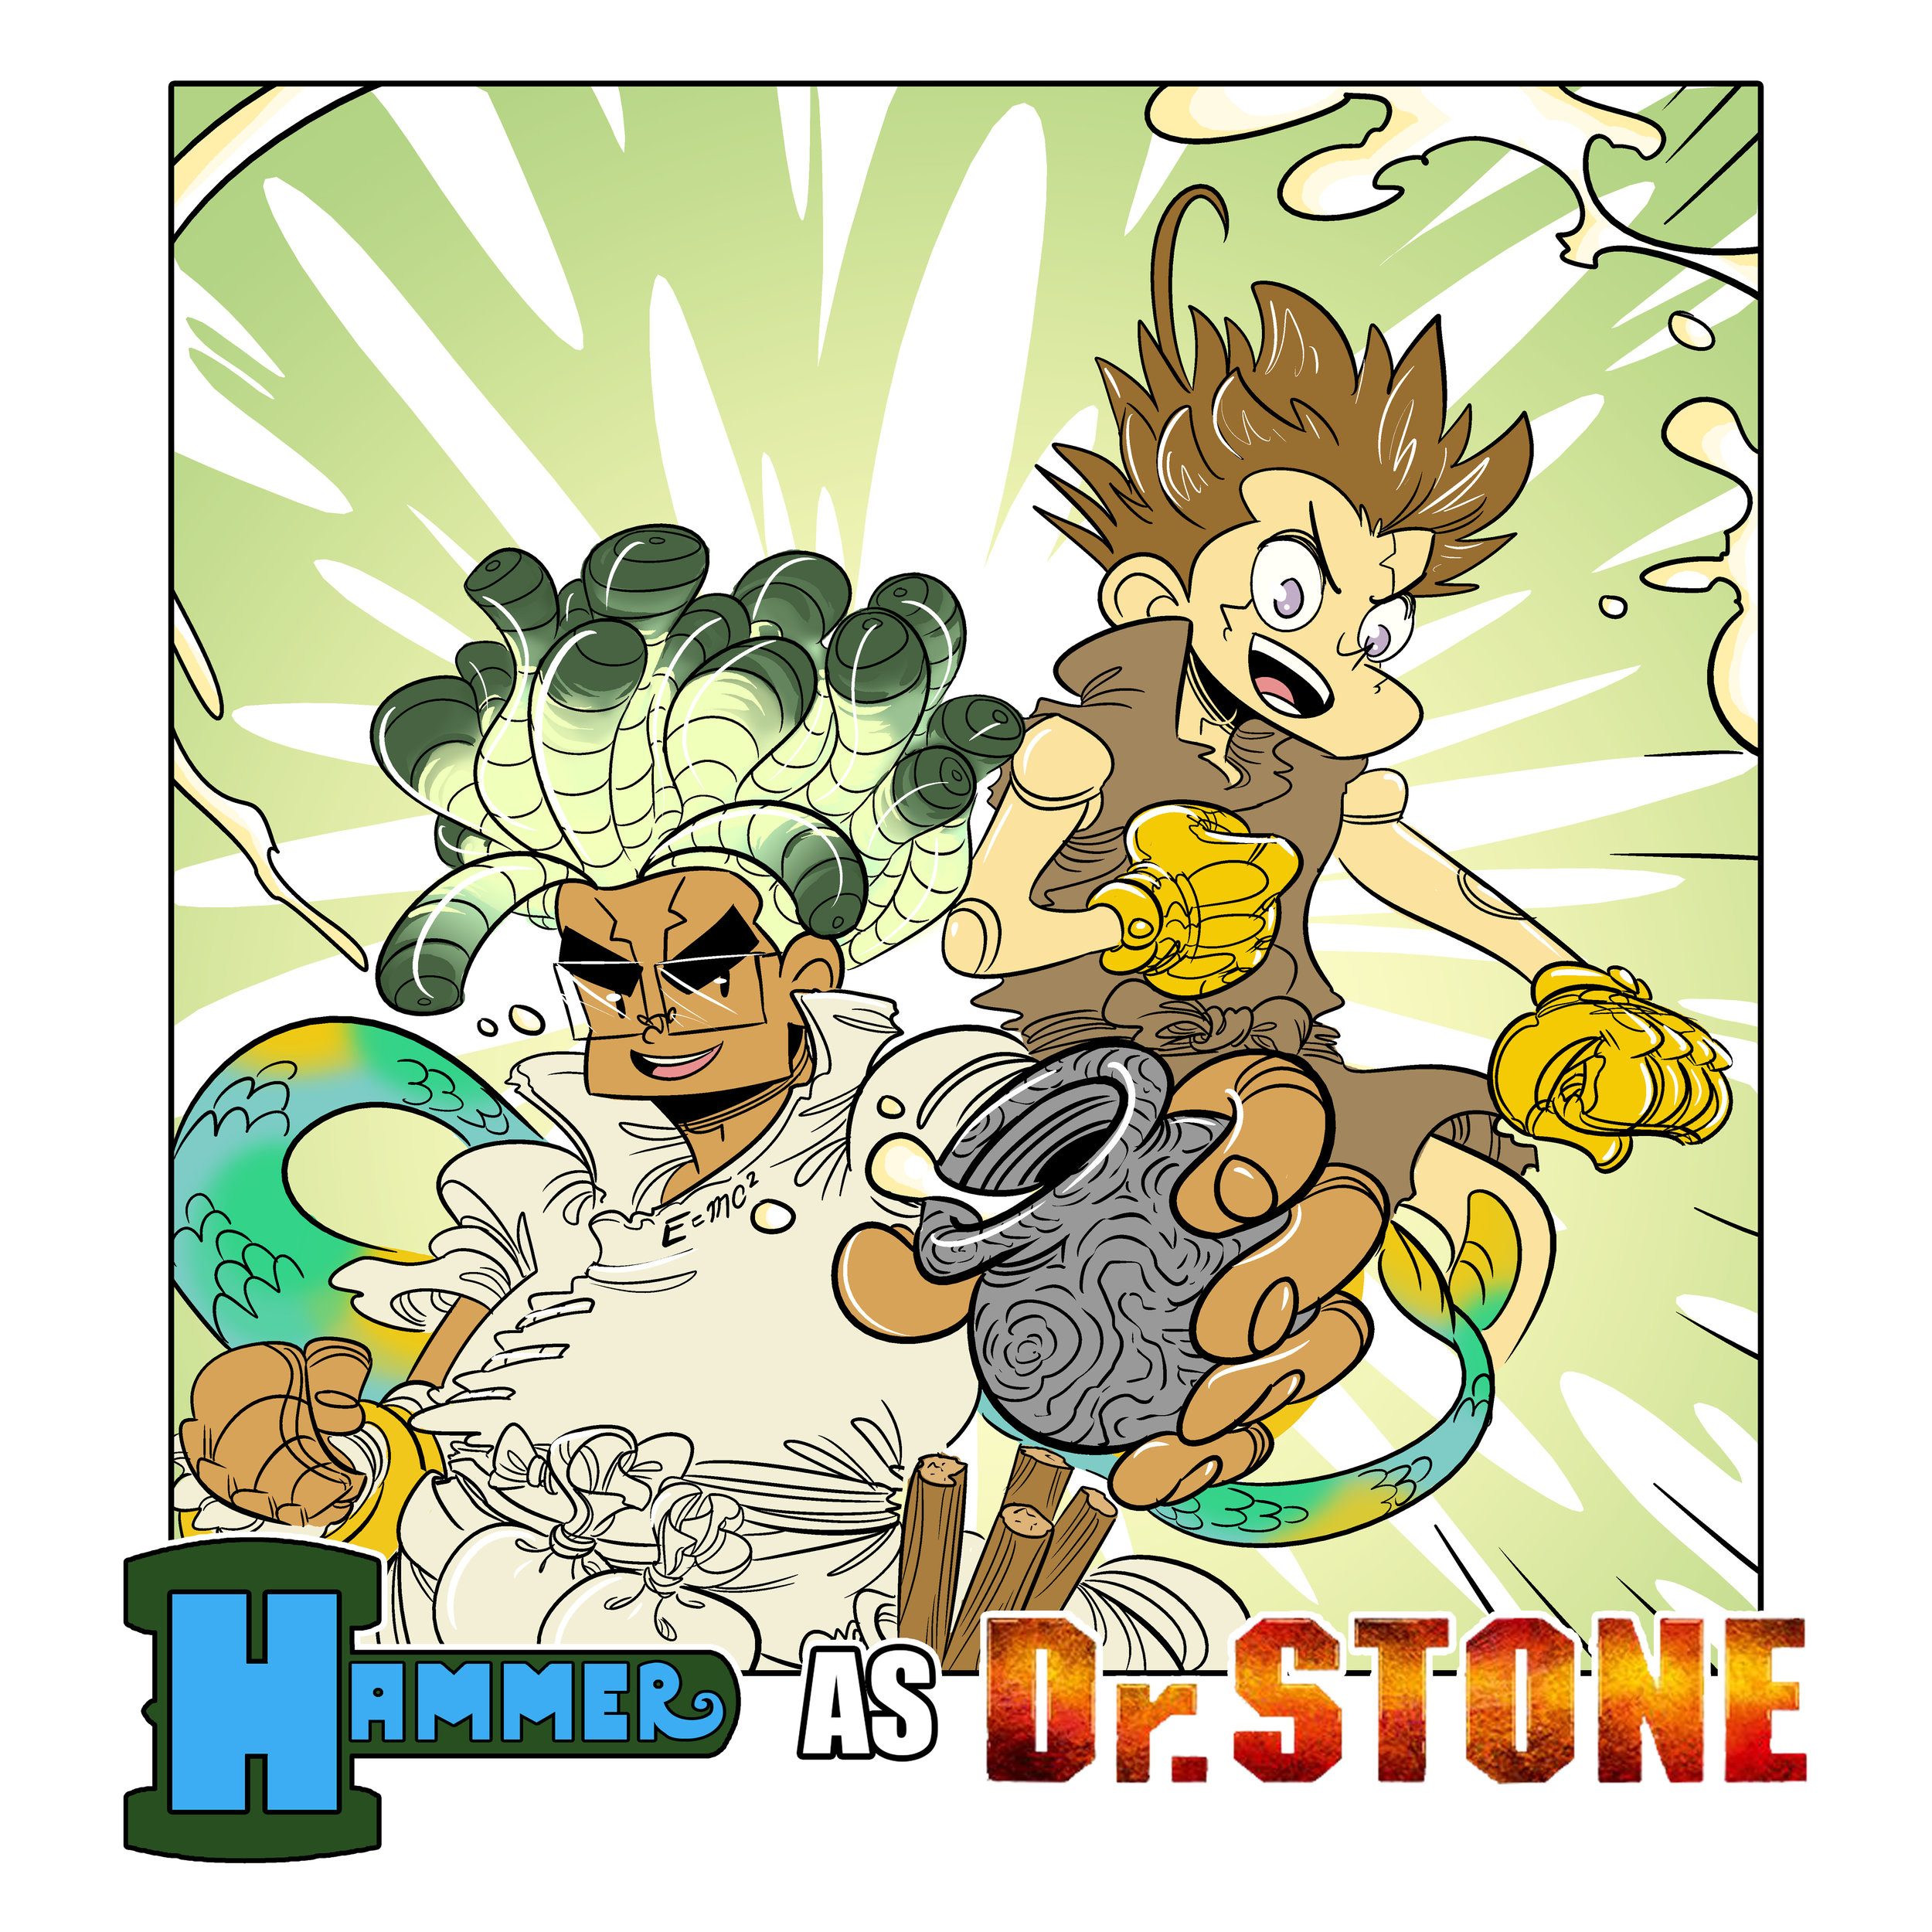 HAMMER AS DR STONE.jpg